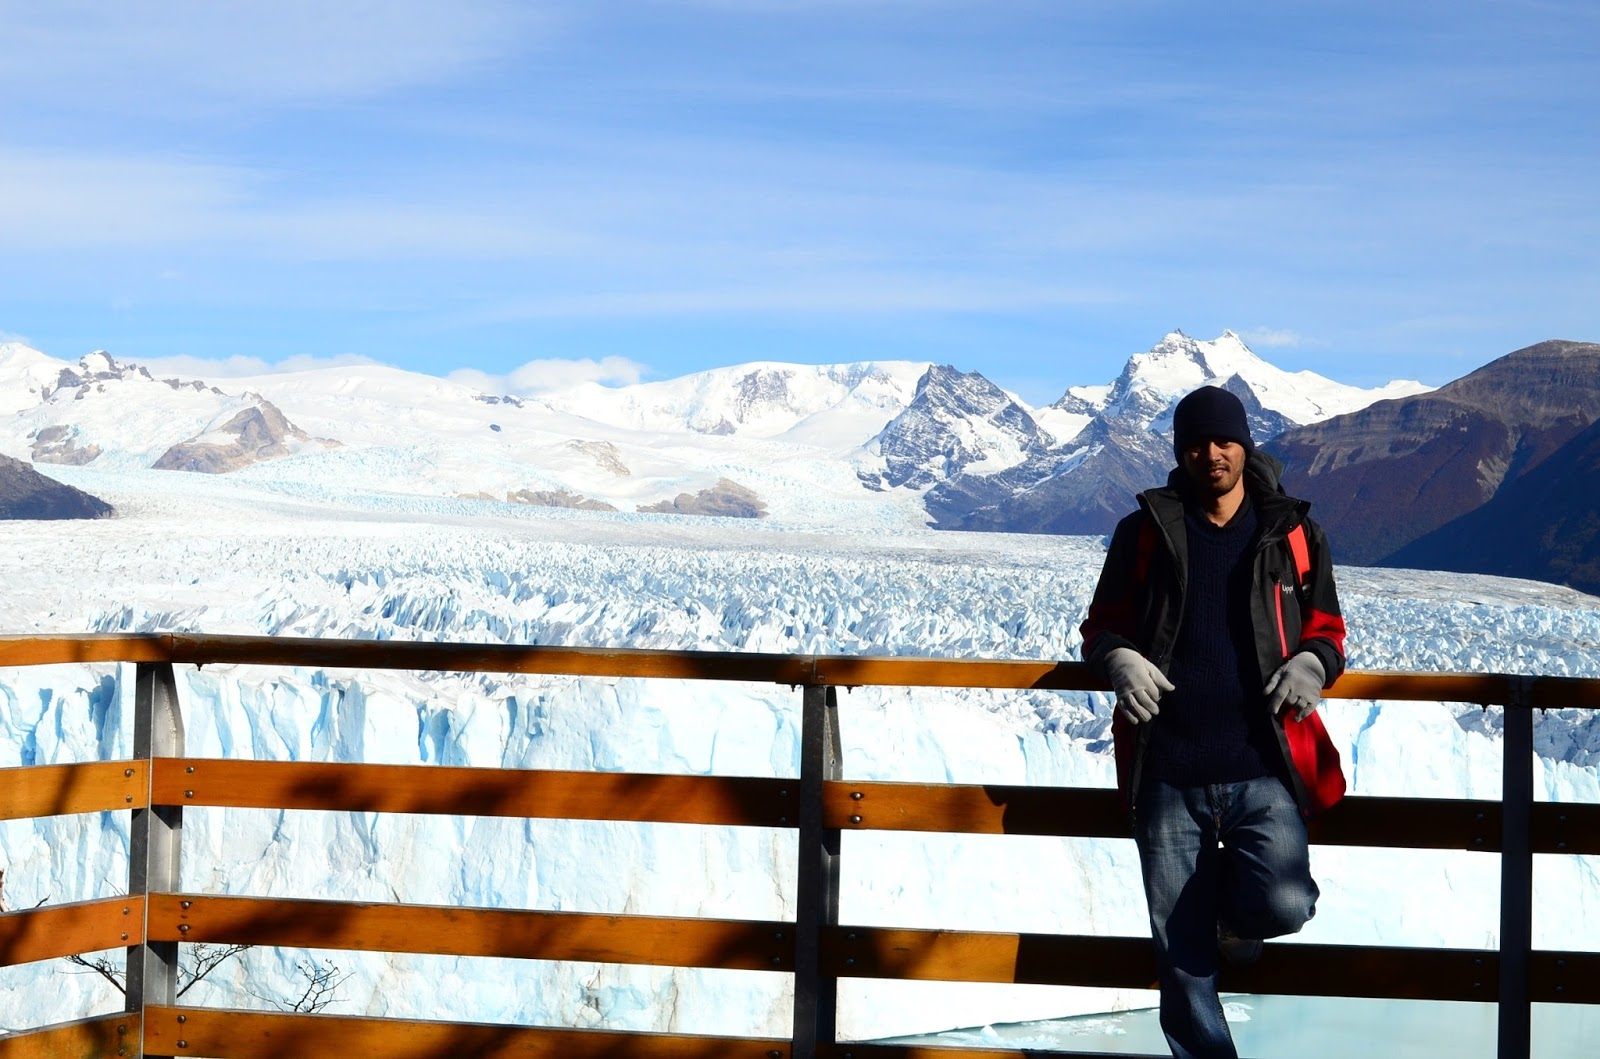 Globetrotting Mom: When you fail your camera. And the beauty around you (Perito Moreno Glacier, Argentina)